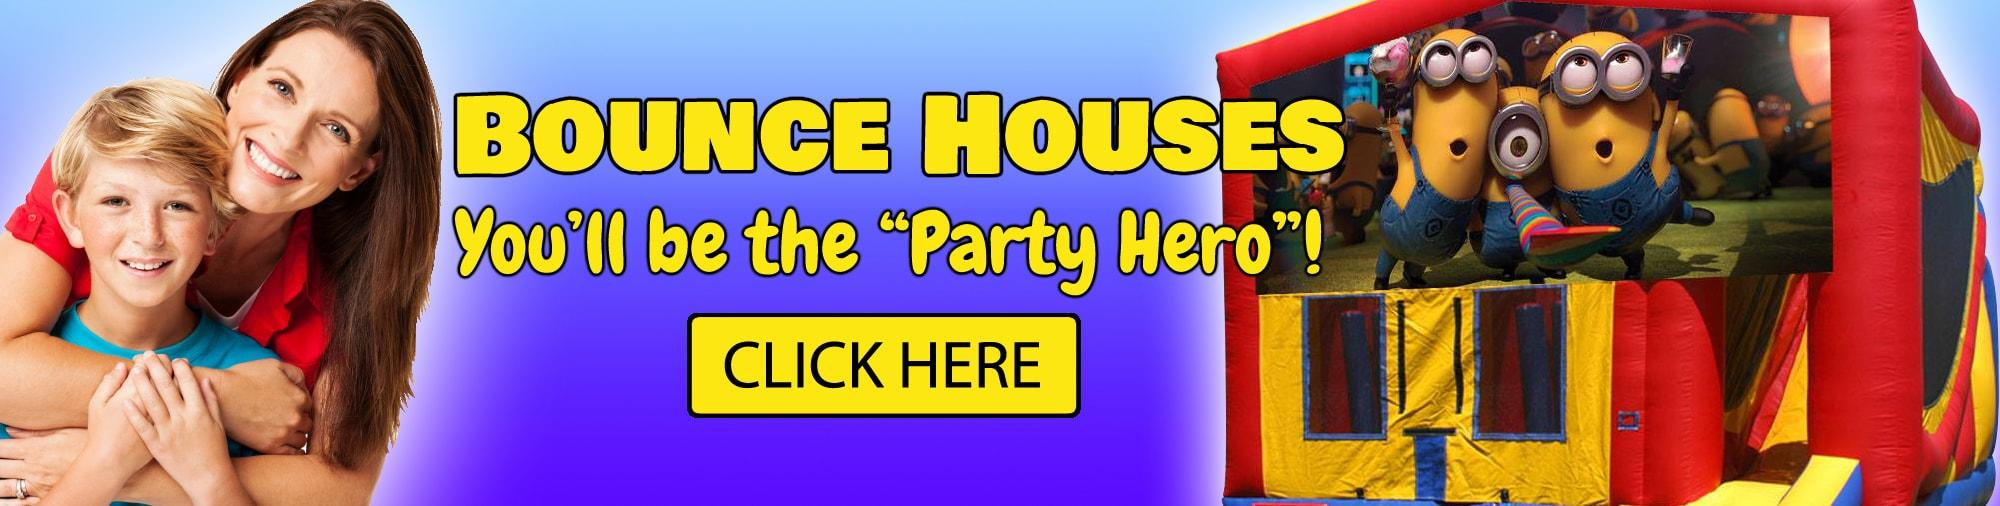 Detroit Bounce House Rentals